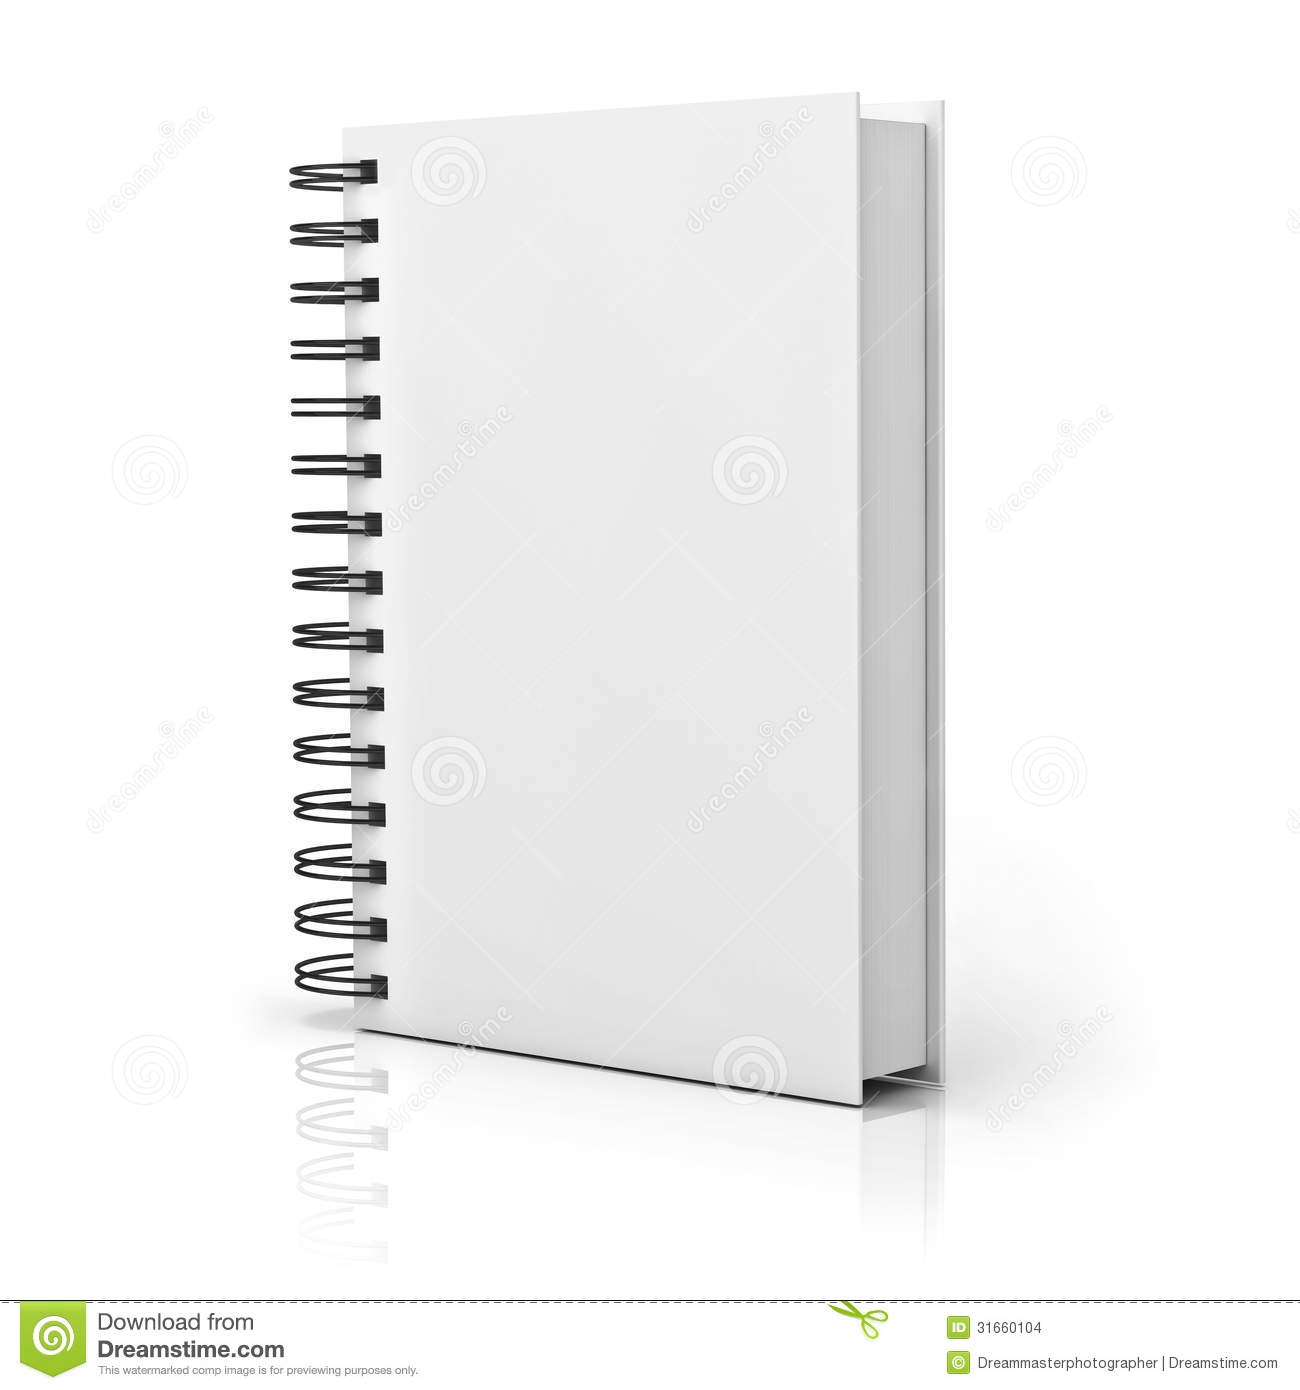 blank map of the united states with Stock Images Blank Notebook Cover Over White Background Reflection Image31660104 on File Safeway store numbers by state in 1932 as well Stock Images Blank Notebook Cover Over White Background Reflection Image31660104 furthermore Stock Illustration Page Template Presentation Steps Option Blank Range Modern Style Design Cover Business Brochure Vector Illustration Eps Can Be Image50205424 further File Raionul Camenca  Transnistria also Carte.